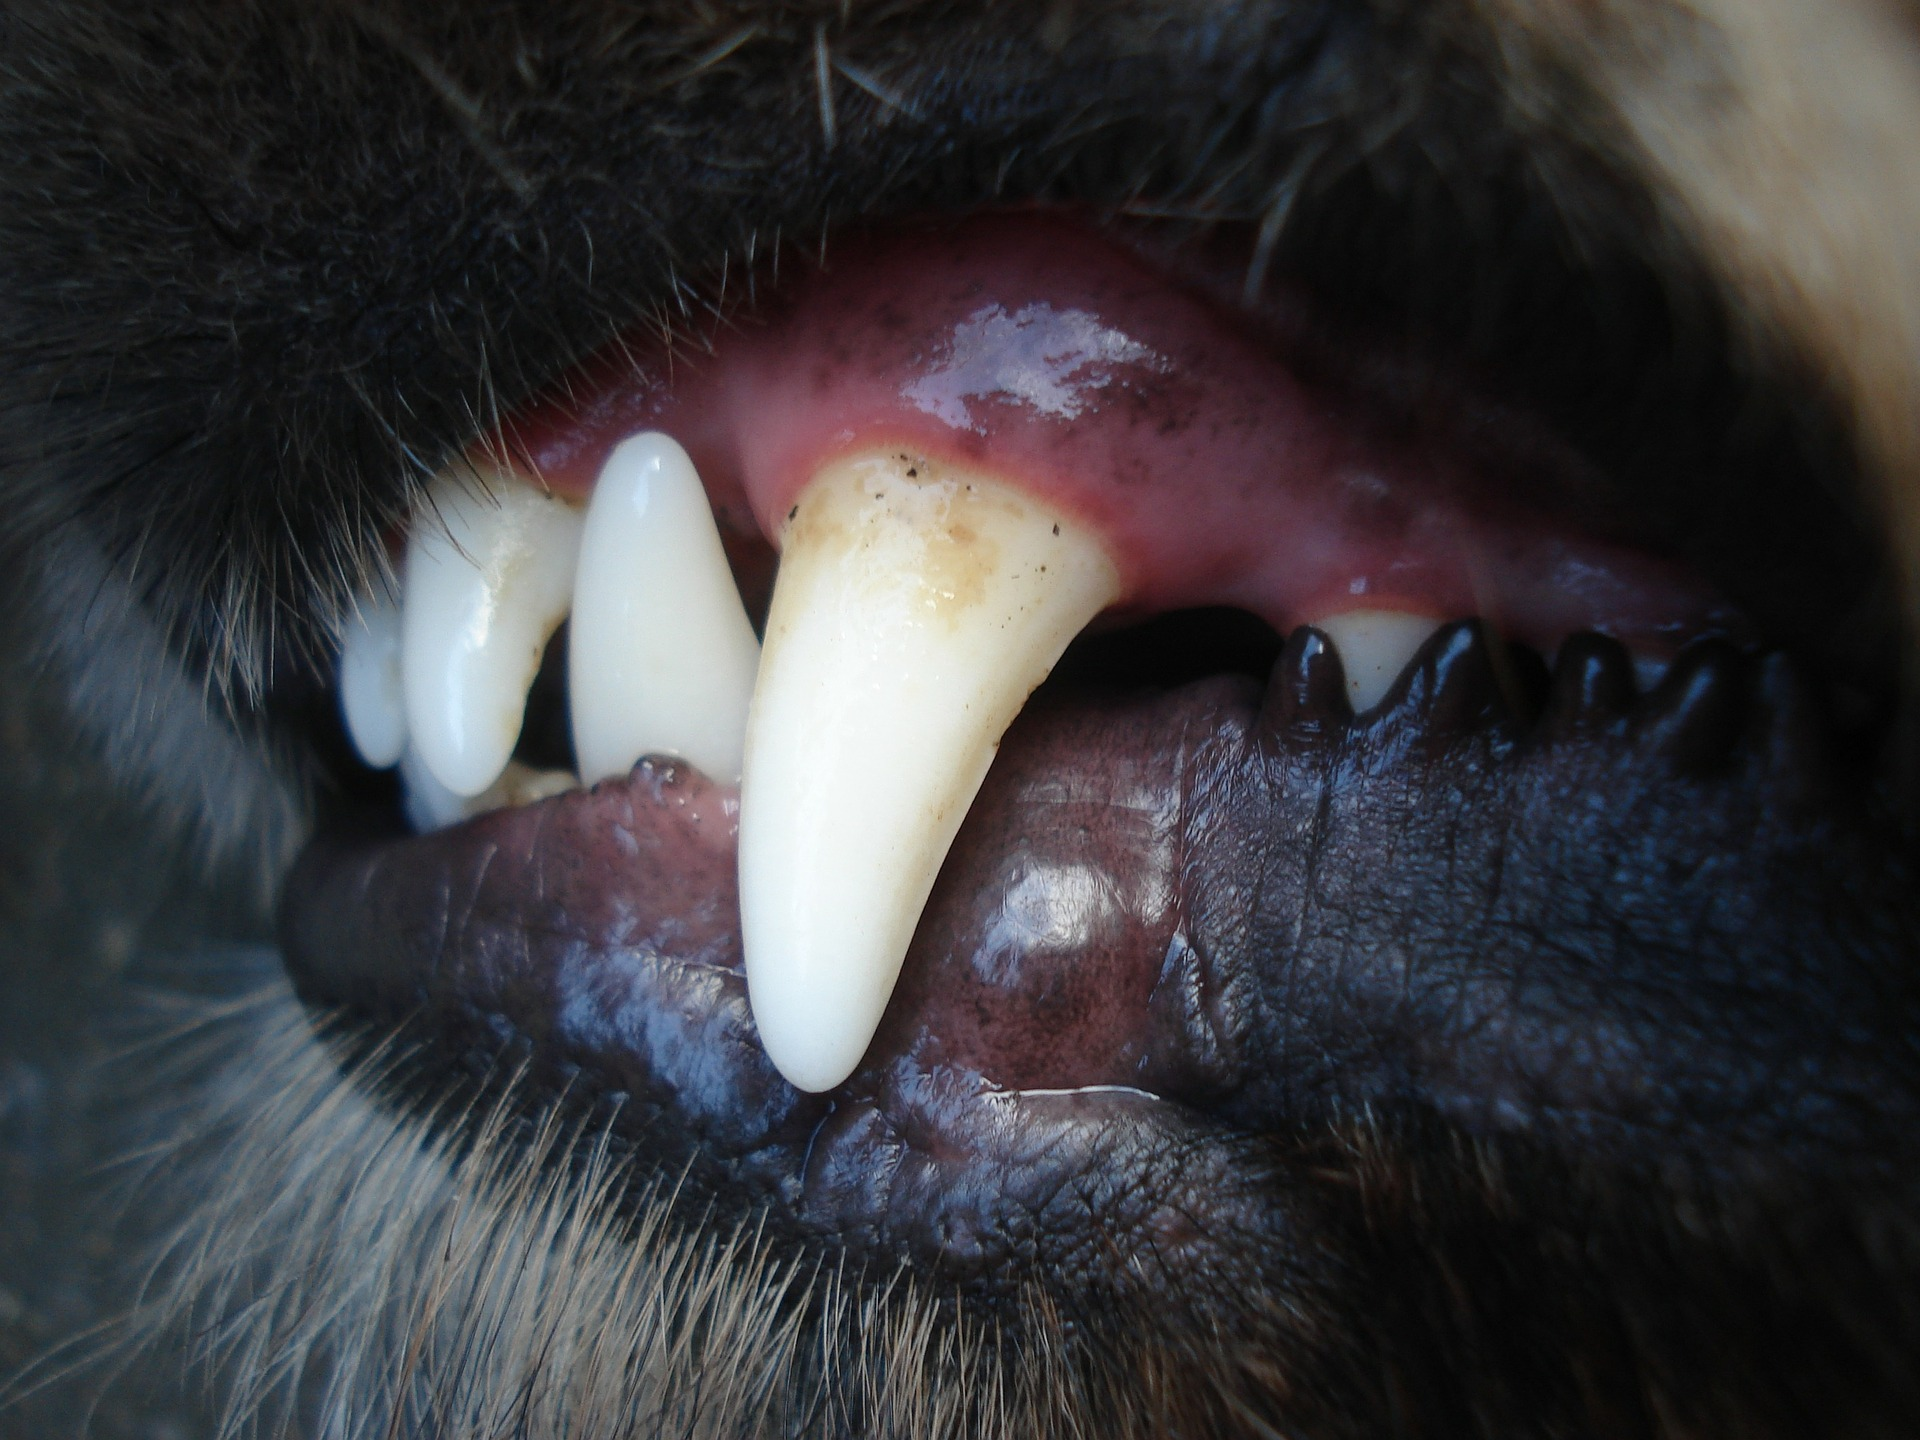 dog teeth cleaning anesthesia - dog teeth plaque